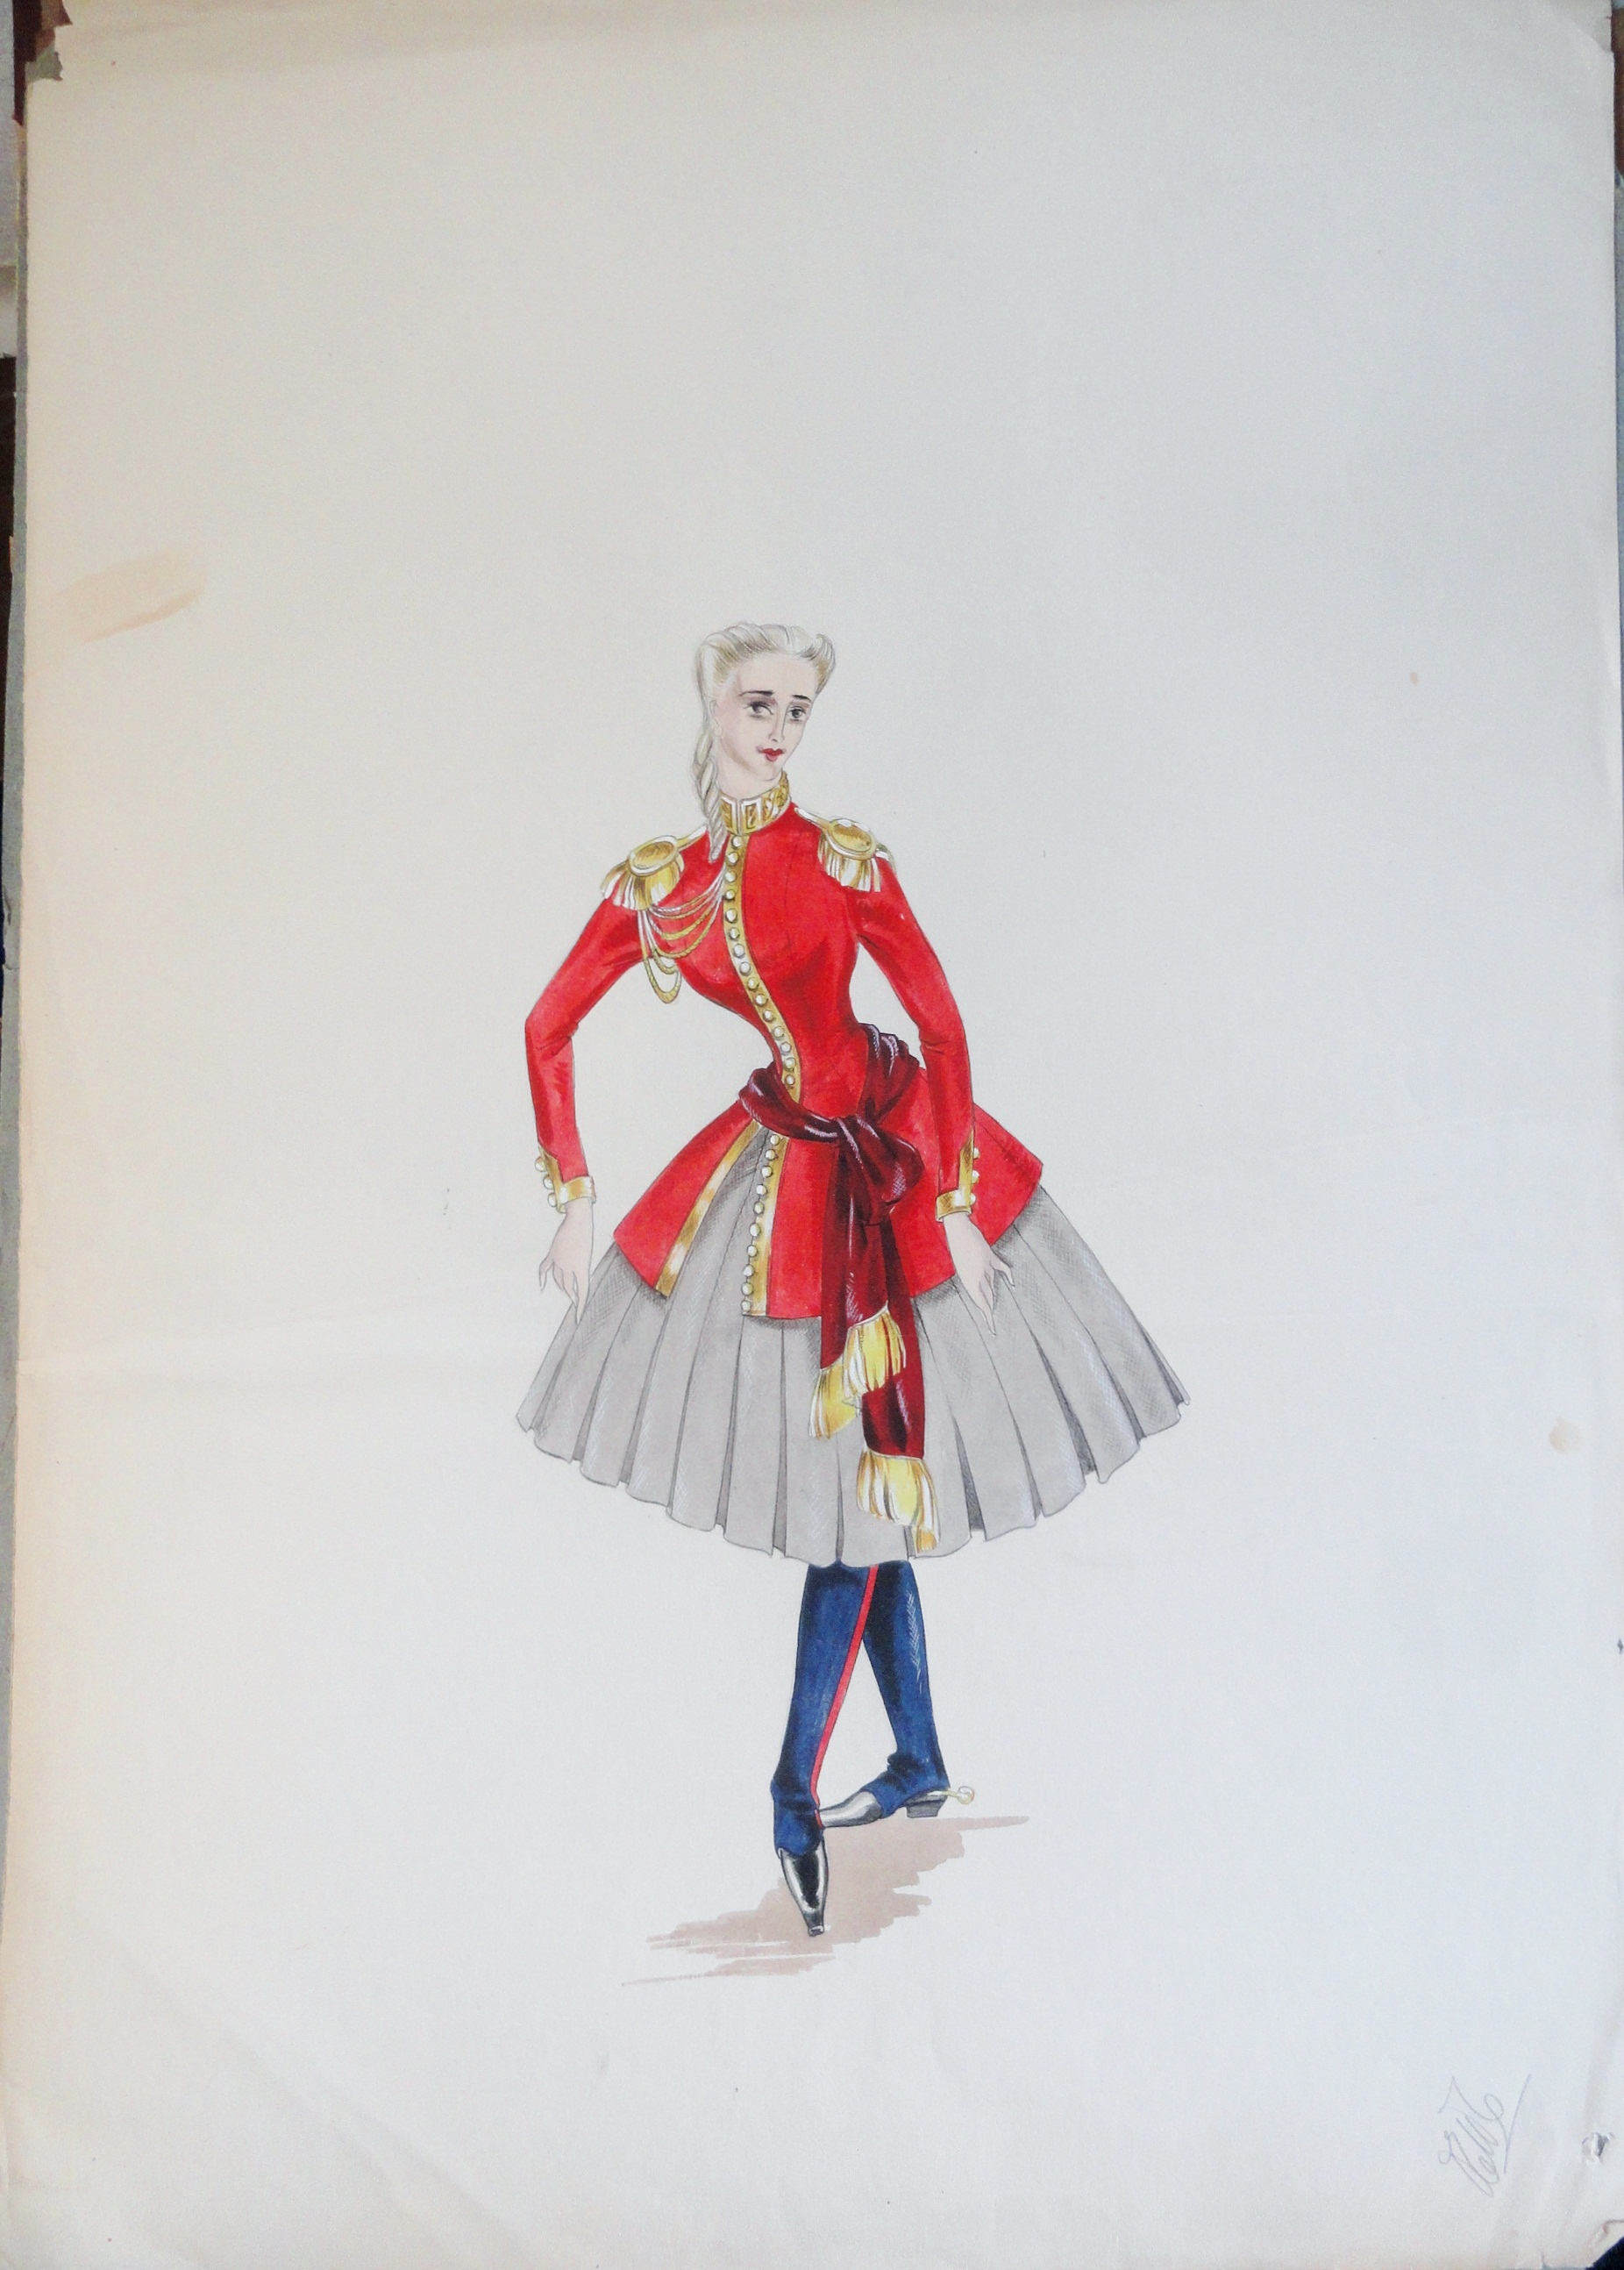 Rachel Felix sister Annette. blonde in bright red uniform top and blue leggings . Pen and ink and gouache painting on paper. From the Rachel Portfolio by Owen Hyde Clark. $400.00.